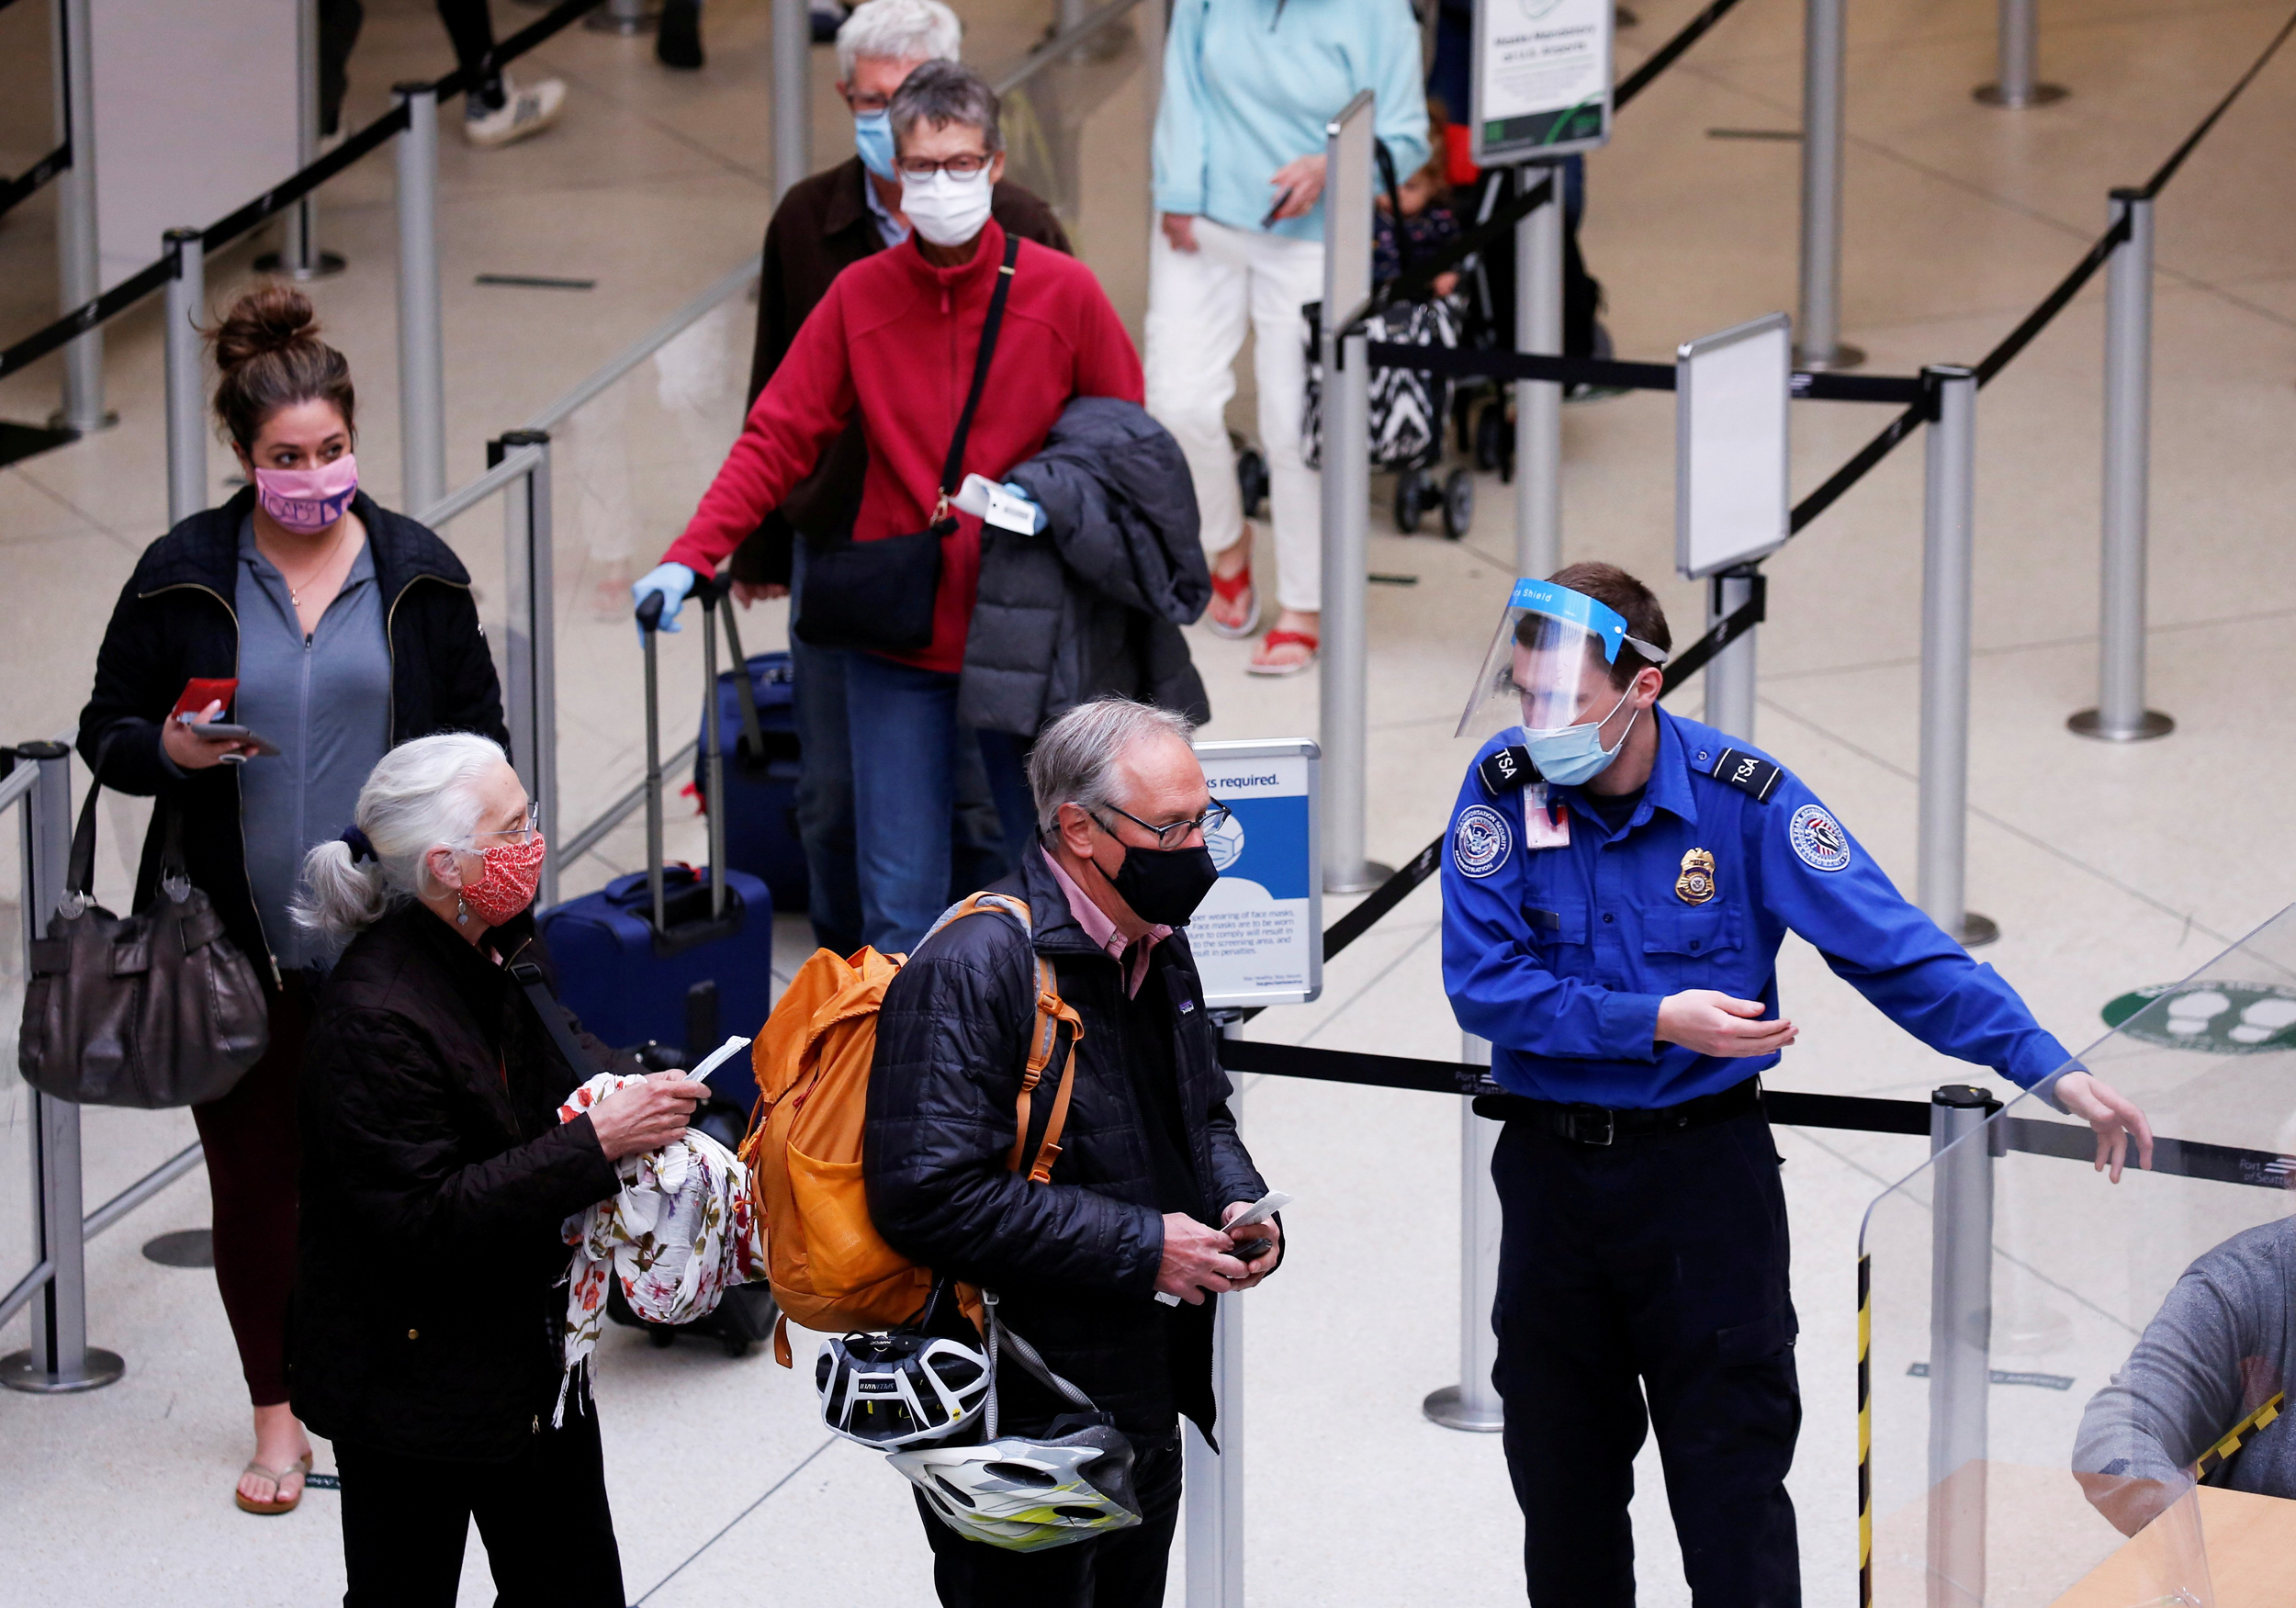 TSA screens more than 2 million on Friday for the first time since March 2020